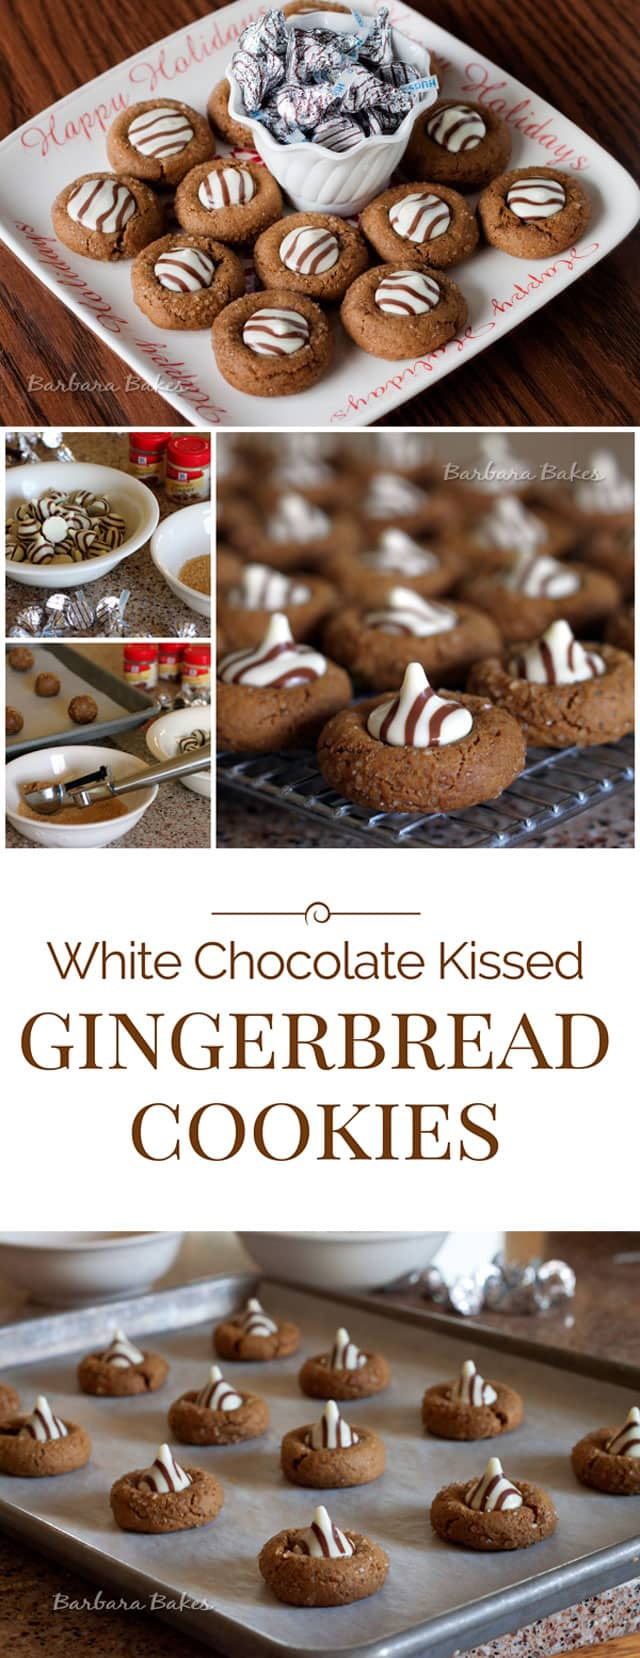 White-Chocolate-Kissed-Gingerbread-Cookies-Collage-2-Barbara-Bakes